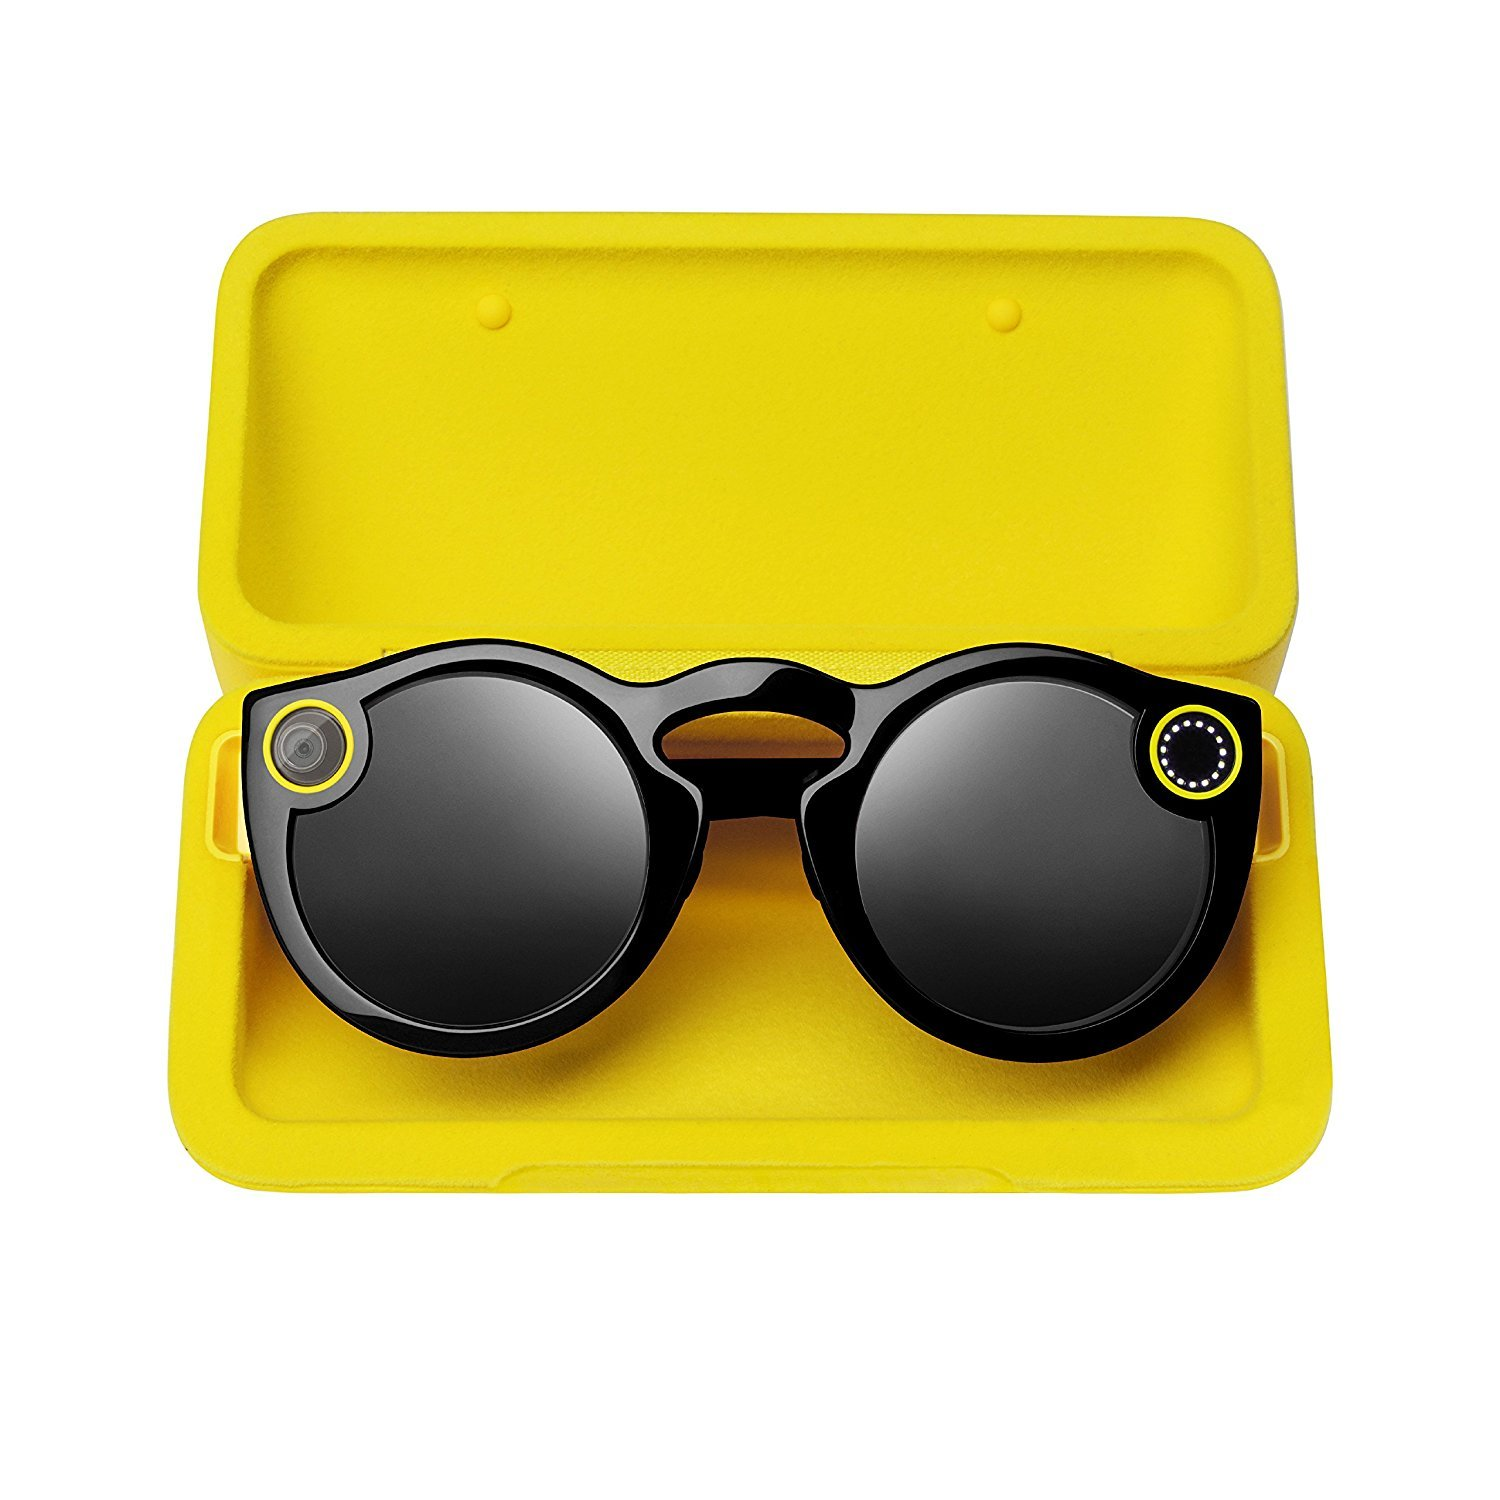 Spectacles - Sunglasses for Snapchat by Snapchat, Inc. (Image #3)